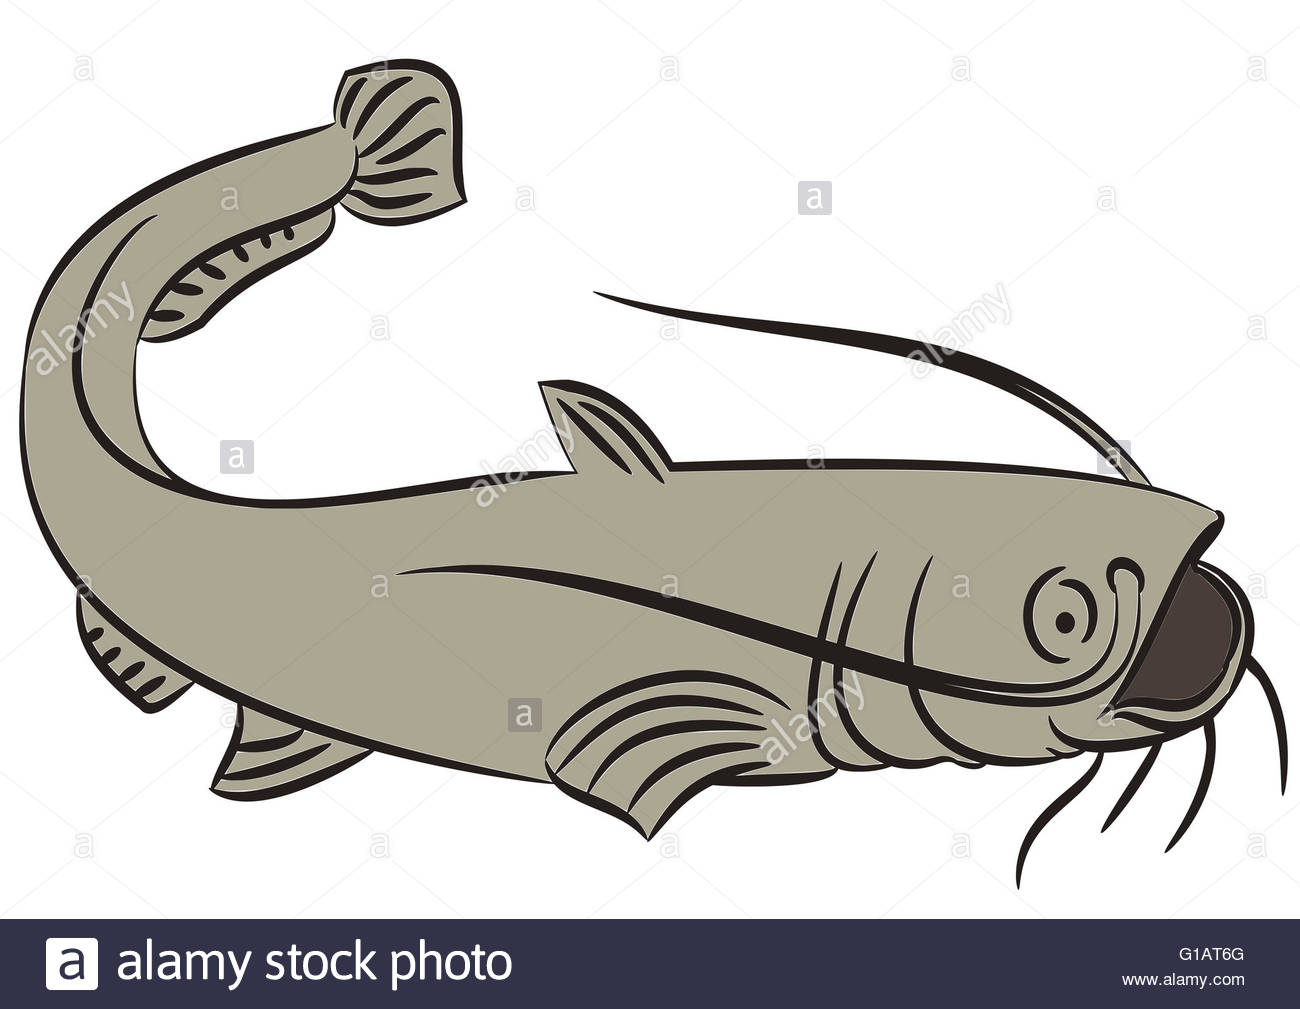 1300x1009 15 Catfish Clipart Draw For Free Download On Mbtskoudsalg